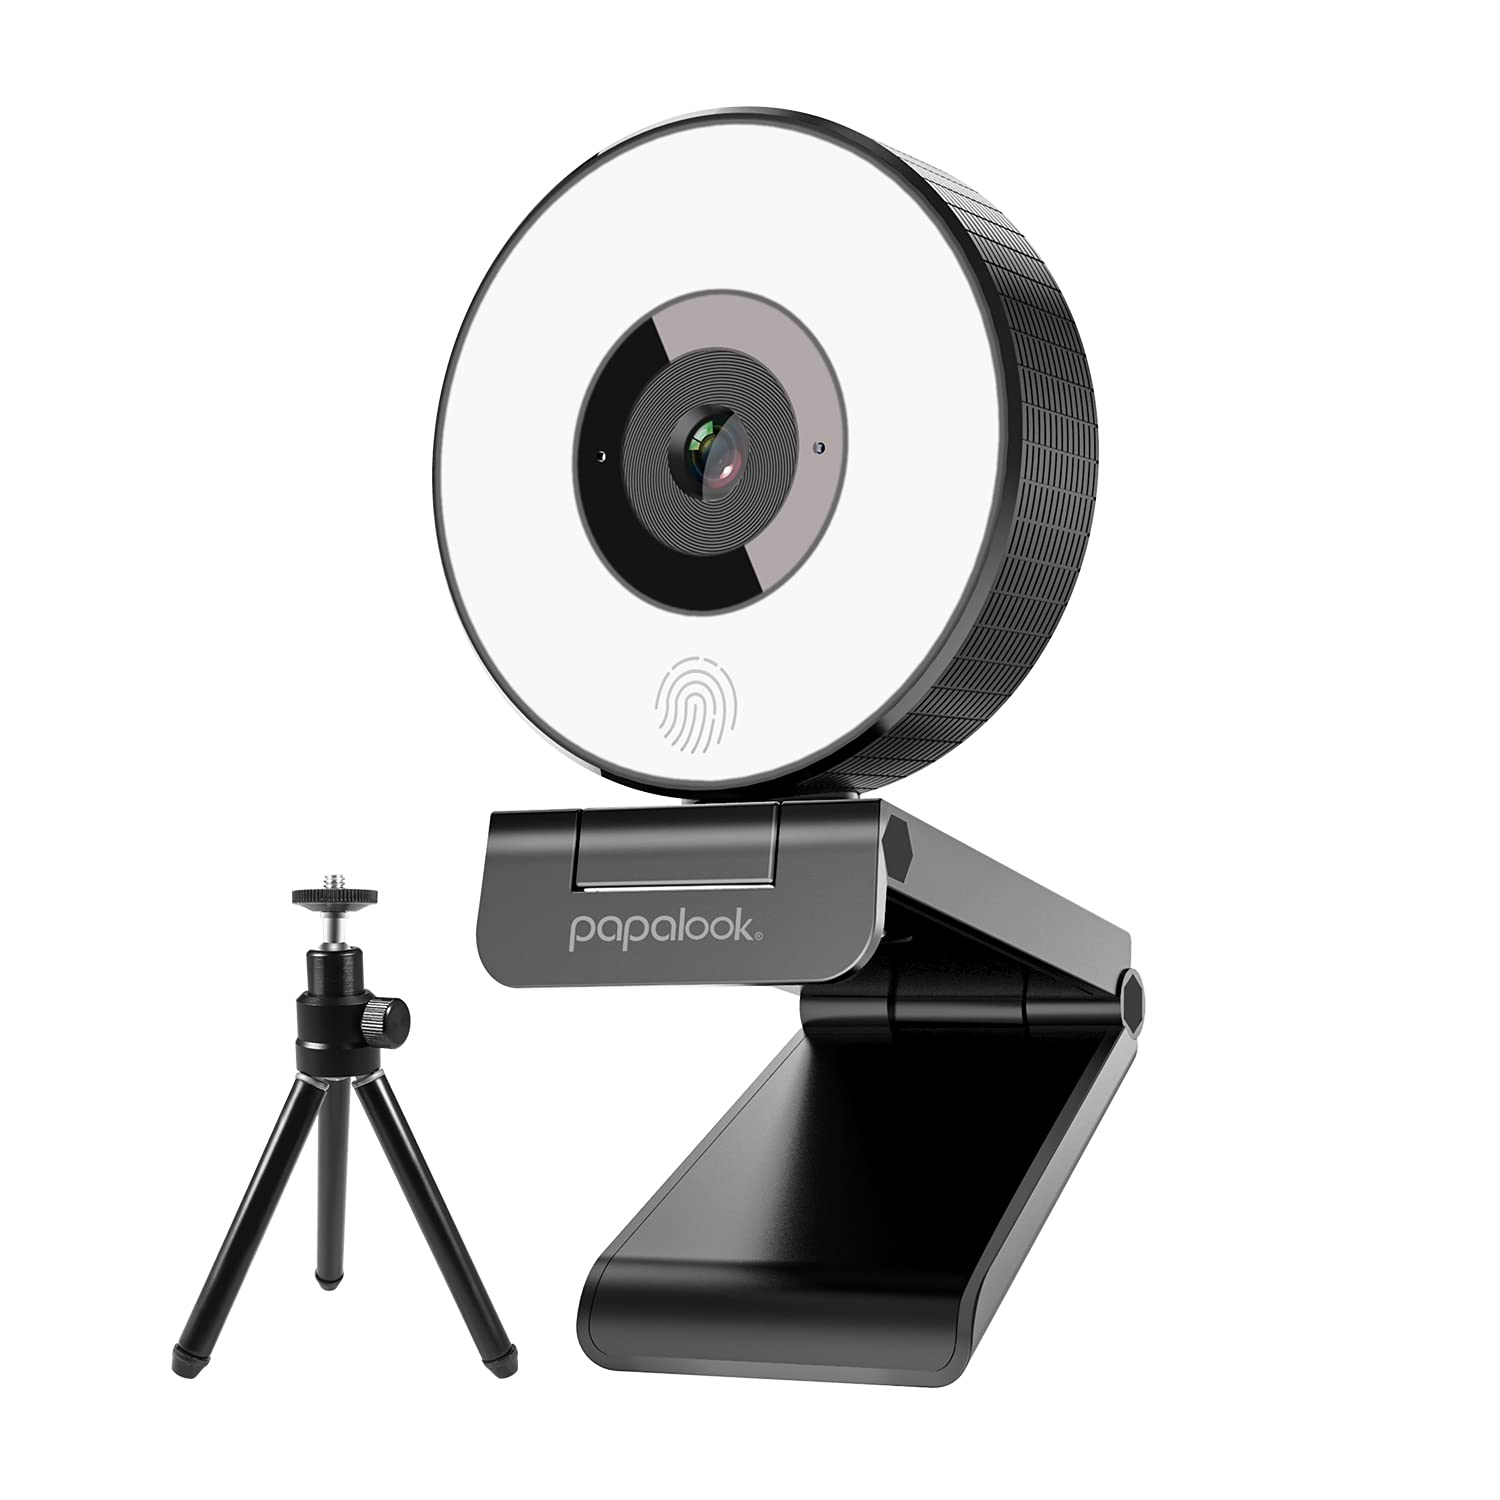 PAPALOOK PA552 Live Streaming Webcam with Ring Light